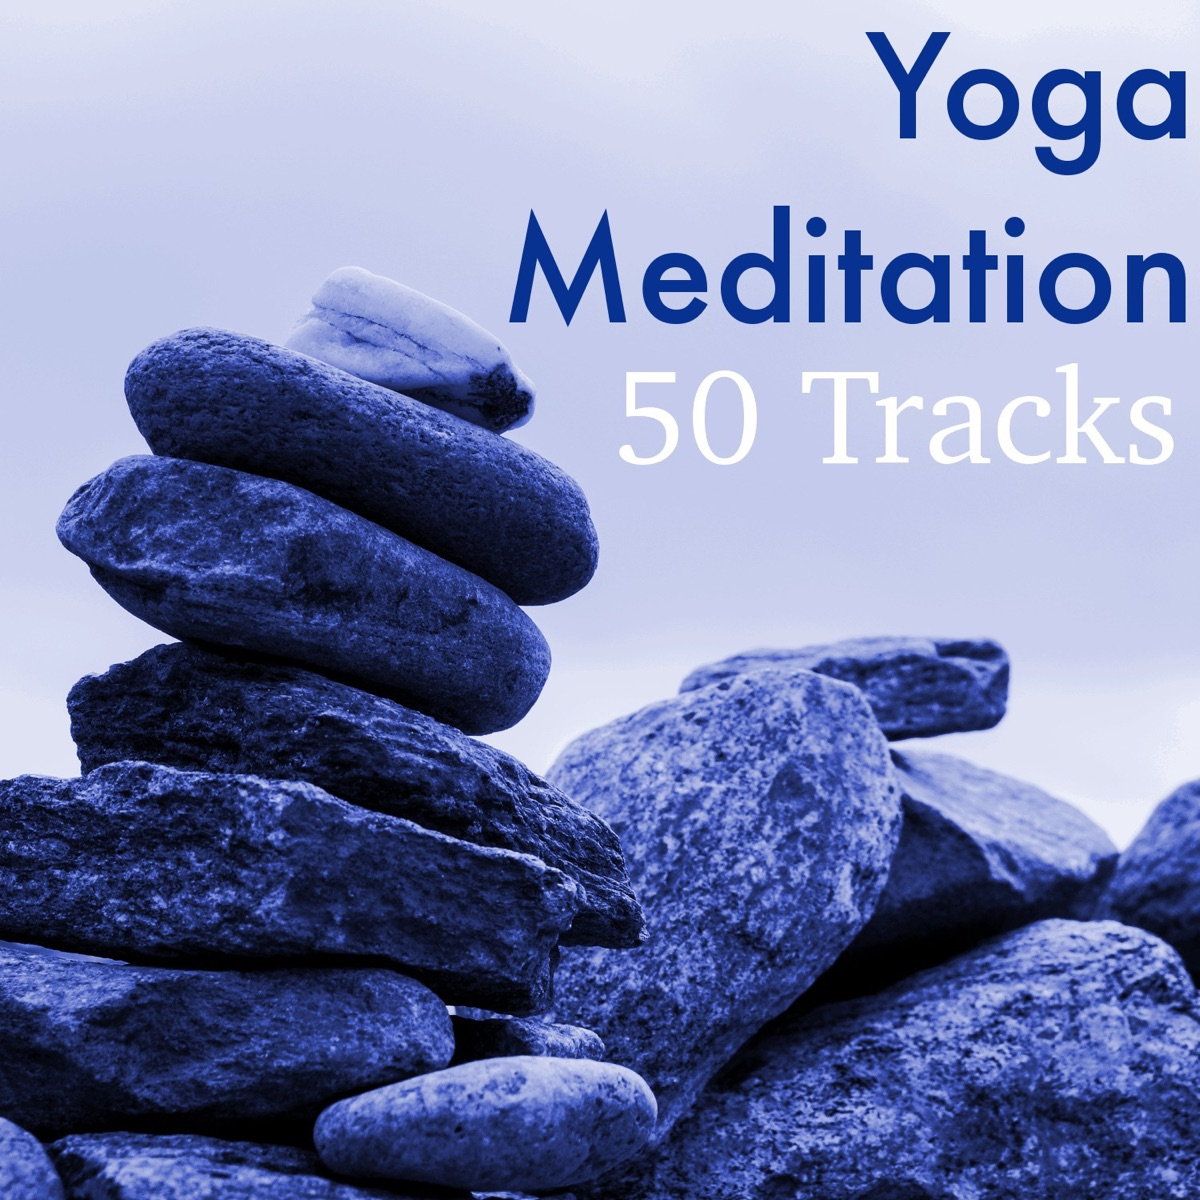 Yoga Meditation 50 Tracks – The Best Relaxing Music With